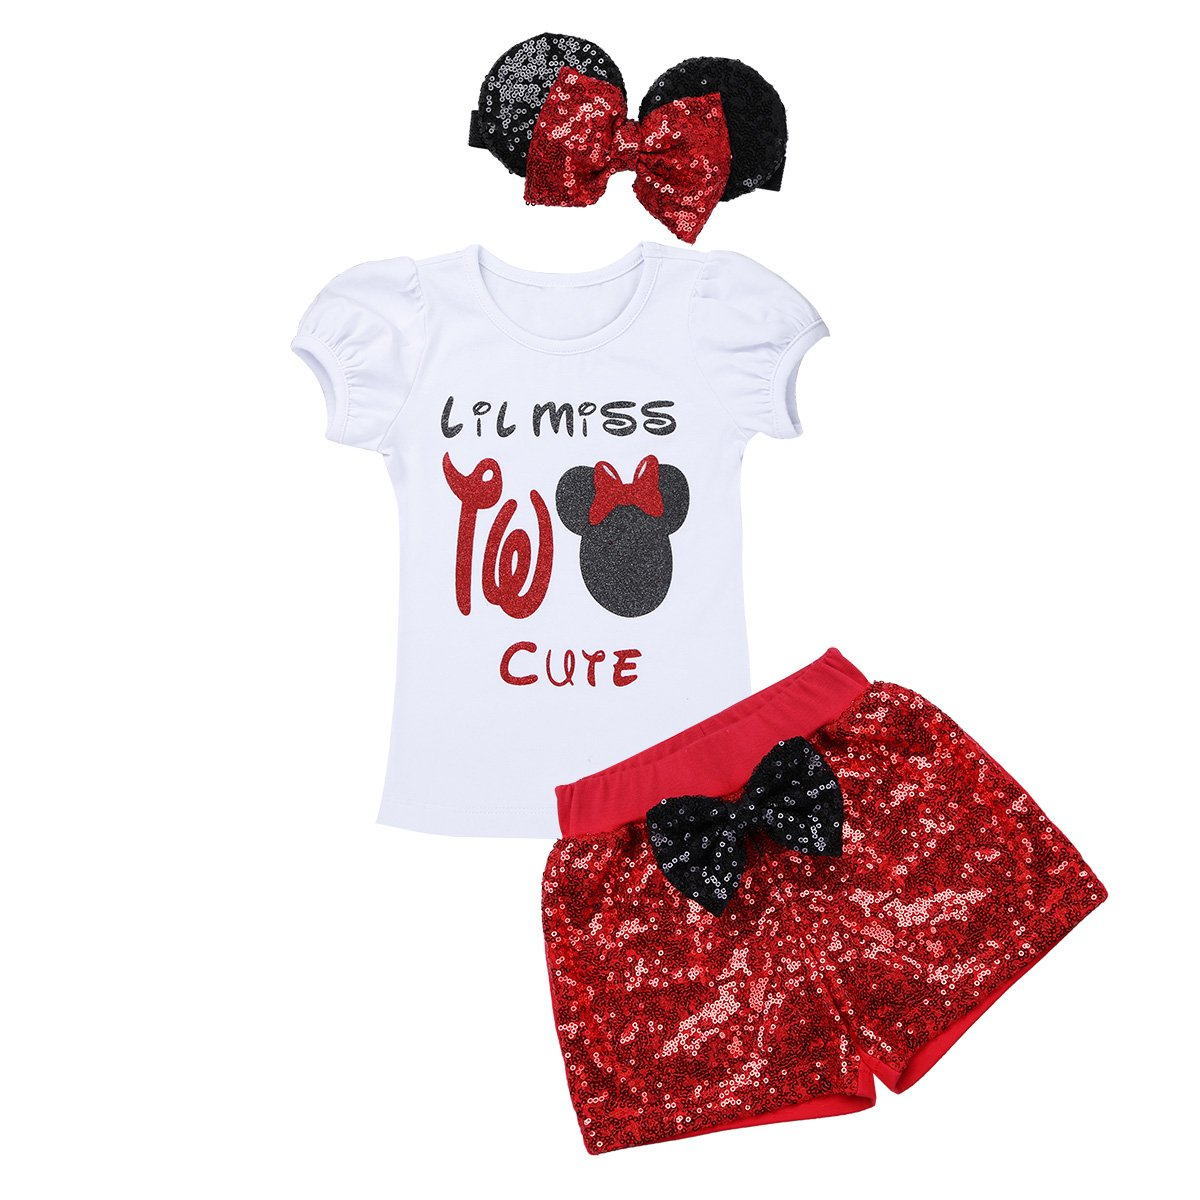 iiniim Baby Girls Shiny Sparkle Two Year 1st/2nd Birthday Outfit Short Sleeve Tops with Sequin Shorts Ear Bow Headband Set White & Red 12-18 Months